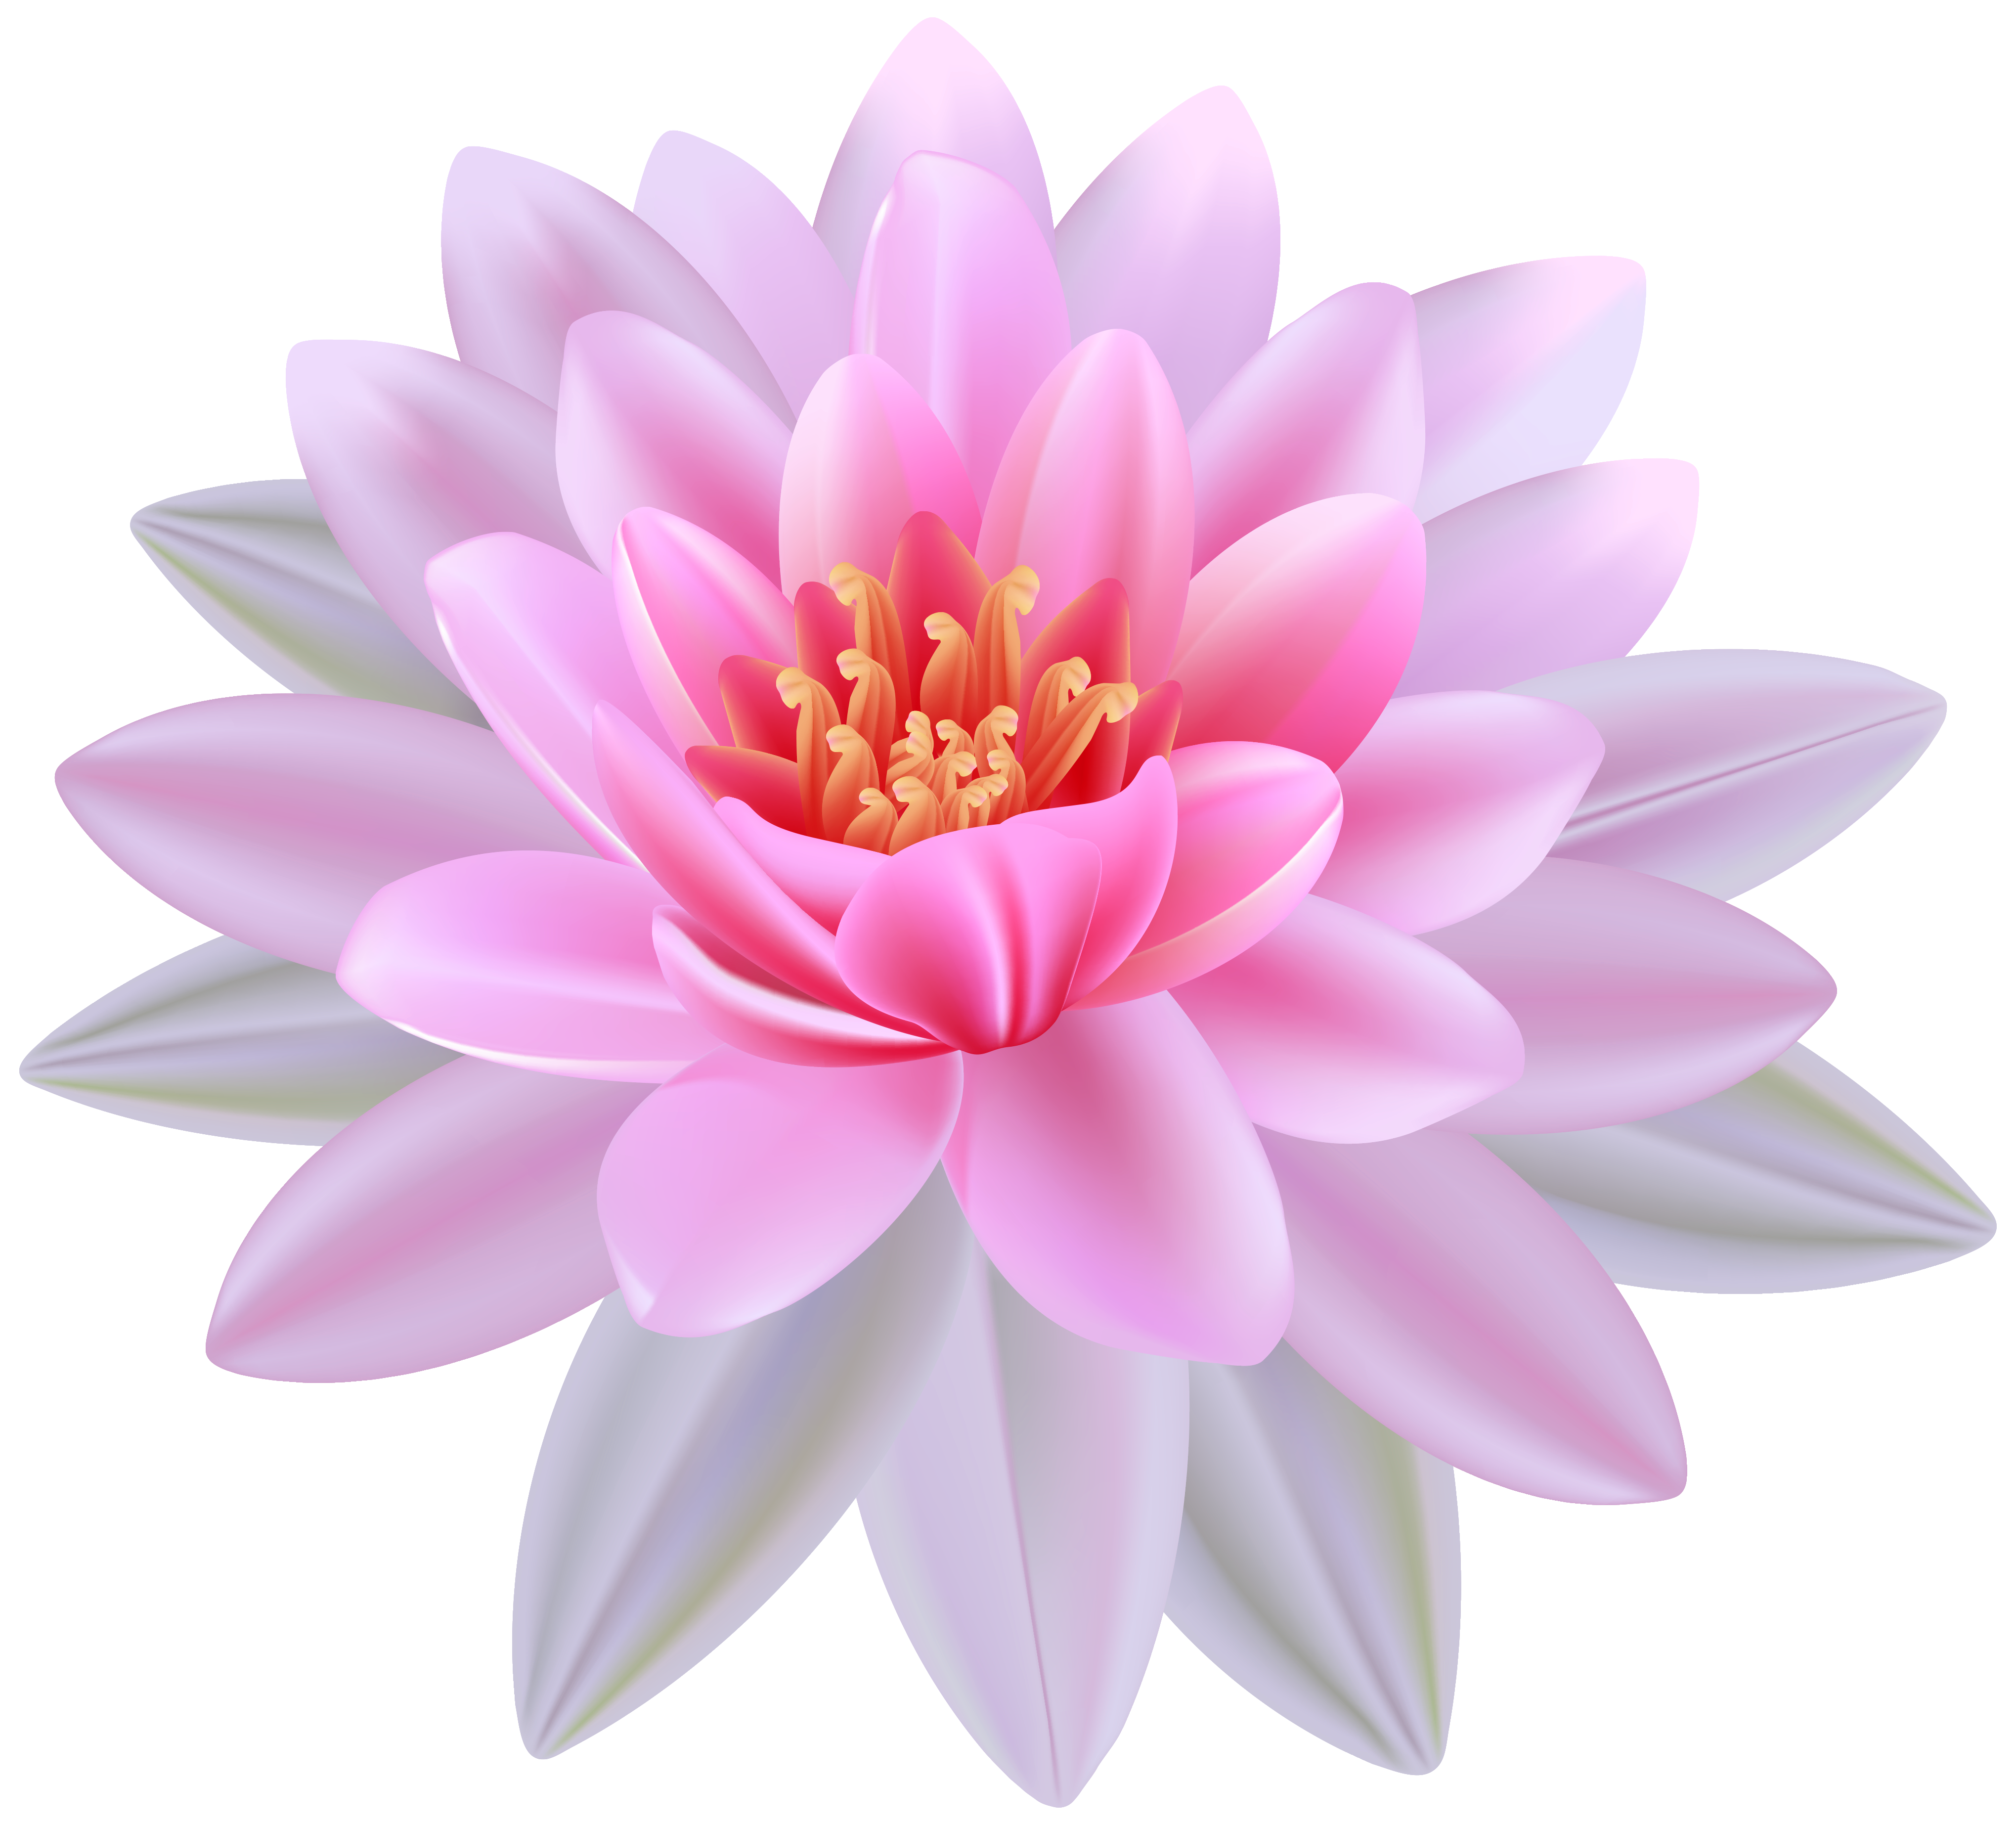 Pink water png image. Lily clipart waterlilly